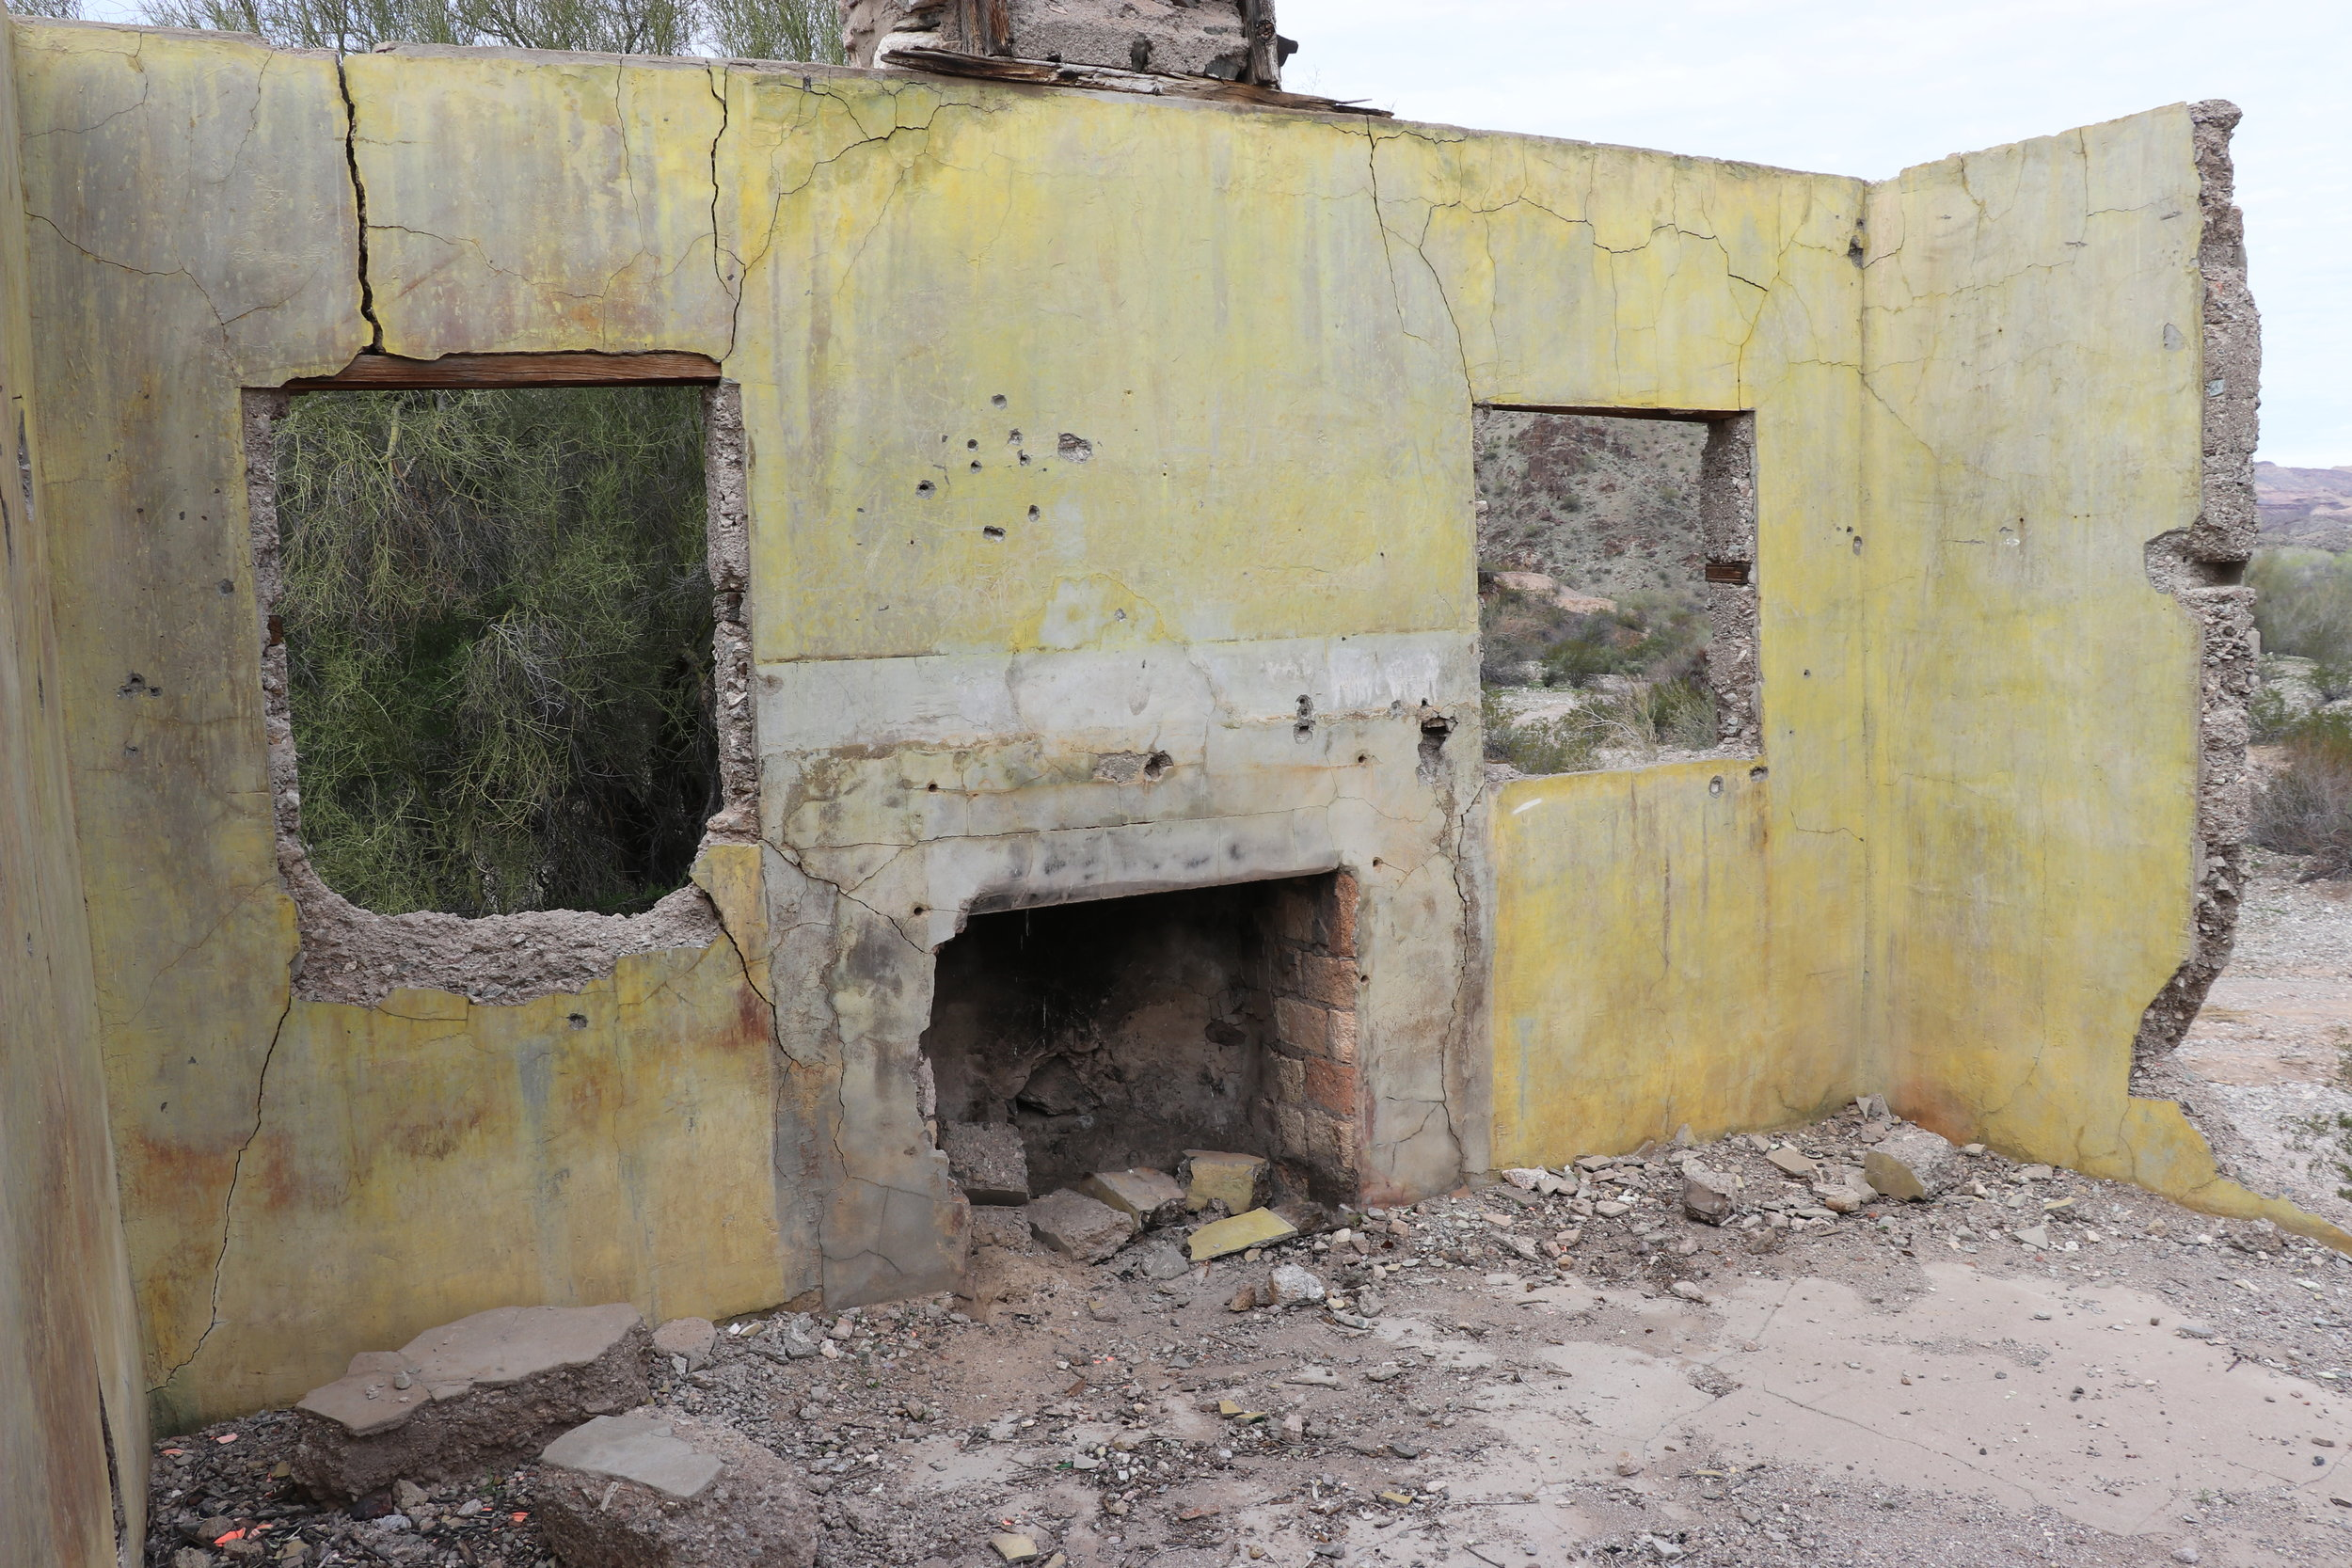 The most intact building on site had a fireplace at one point.